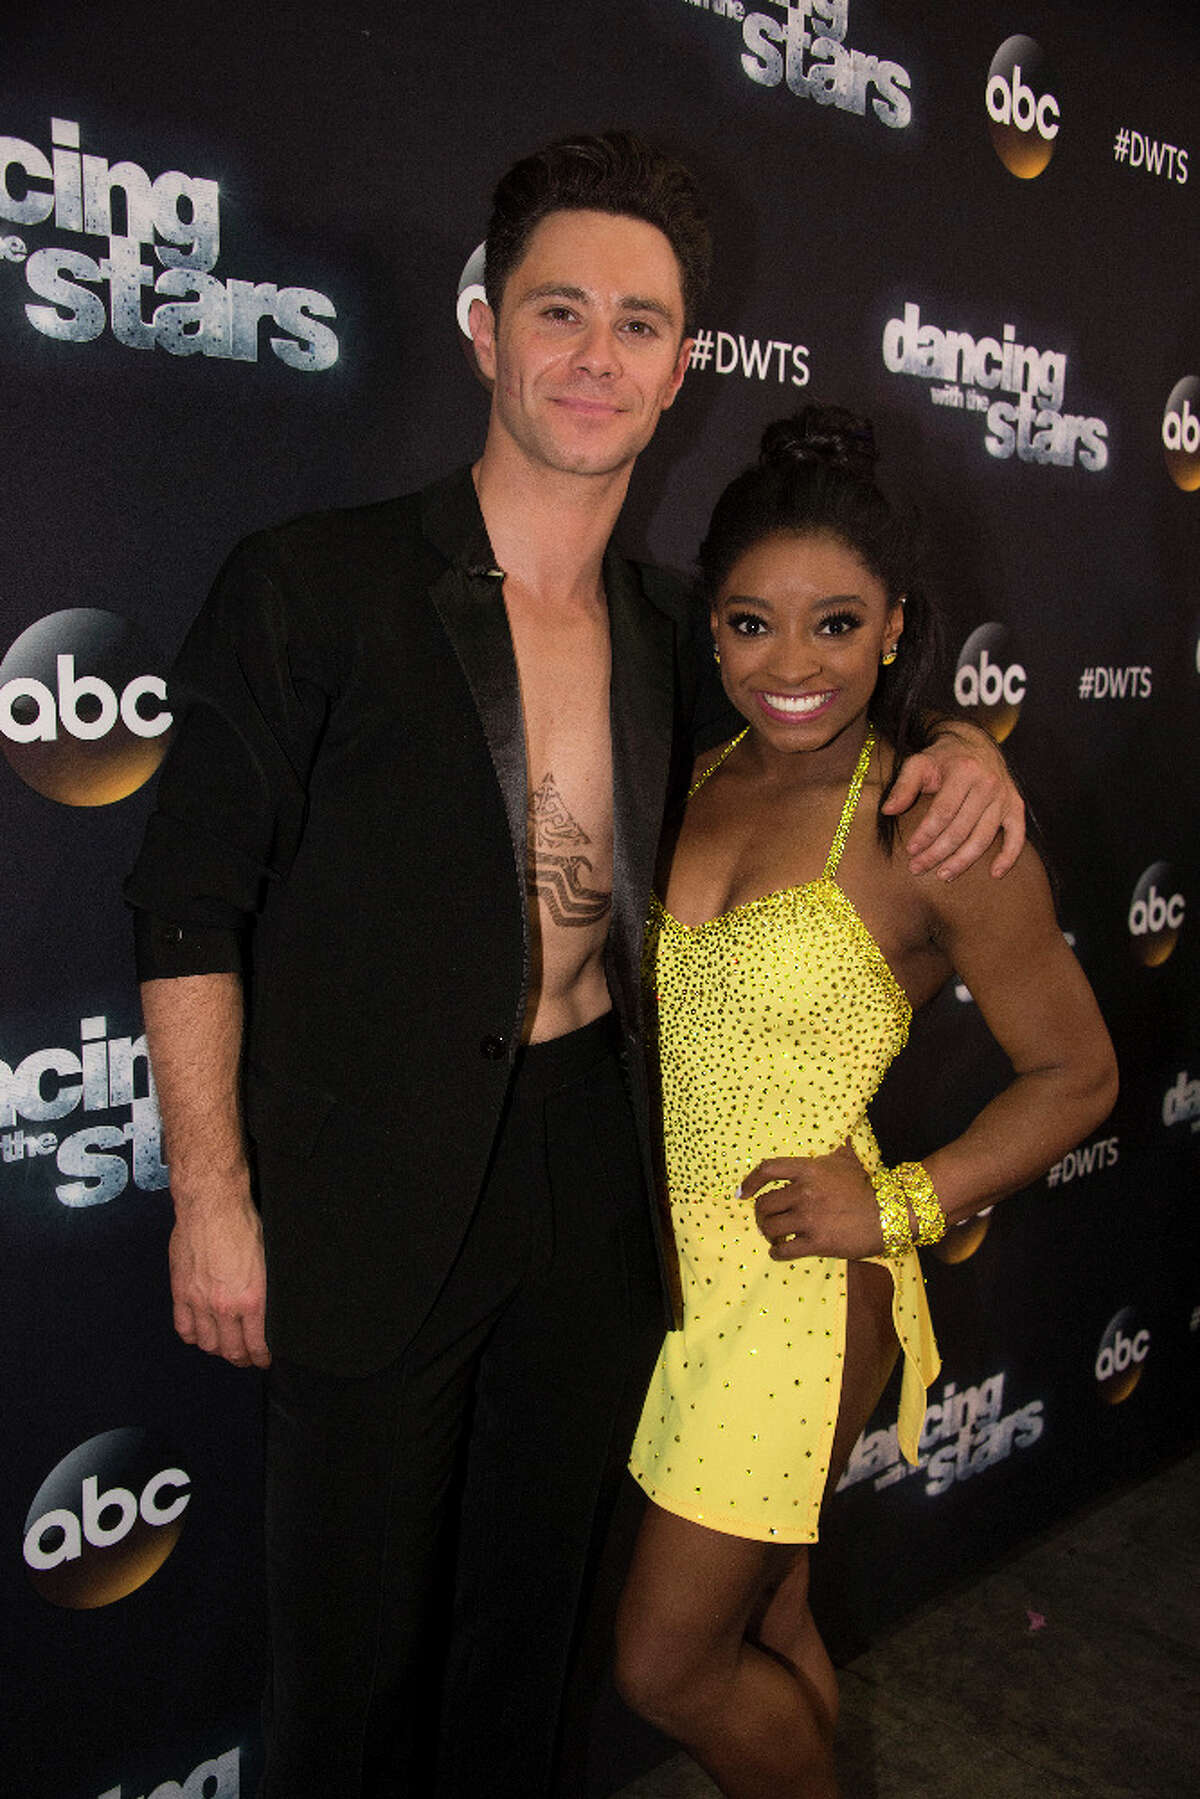 Simone Biles and Sasha Farber danced to Destiny's Child duringBoy Bands vs. Girl Groups Night on Dancing with the Stars.